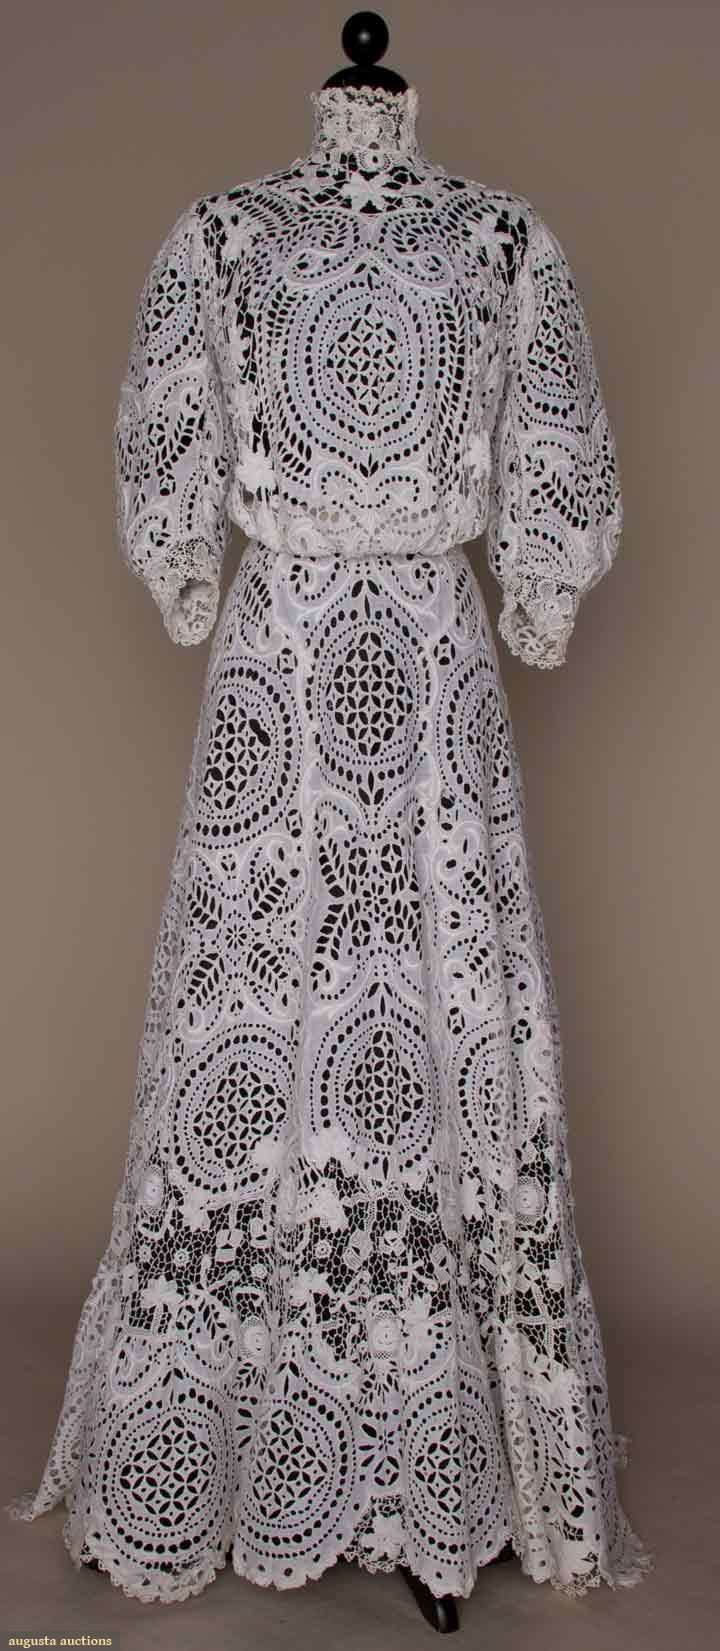 Worked all~over in eyelet & embroidery w/inserts of Irish crochet ~ Pigeon front ~ Trained skirt ~ Balloon  sleeves ~ Augusta Auctions